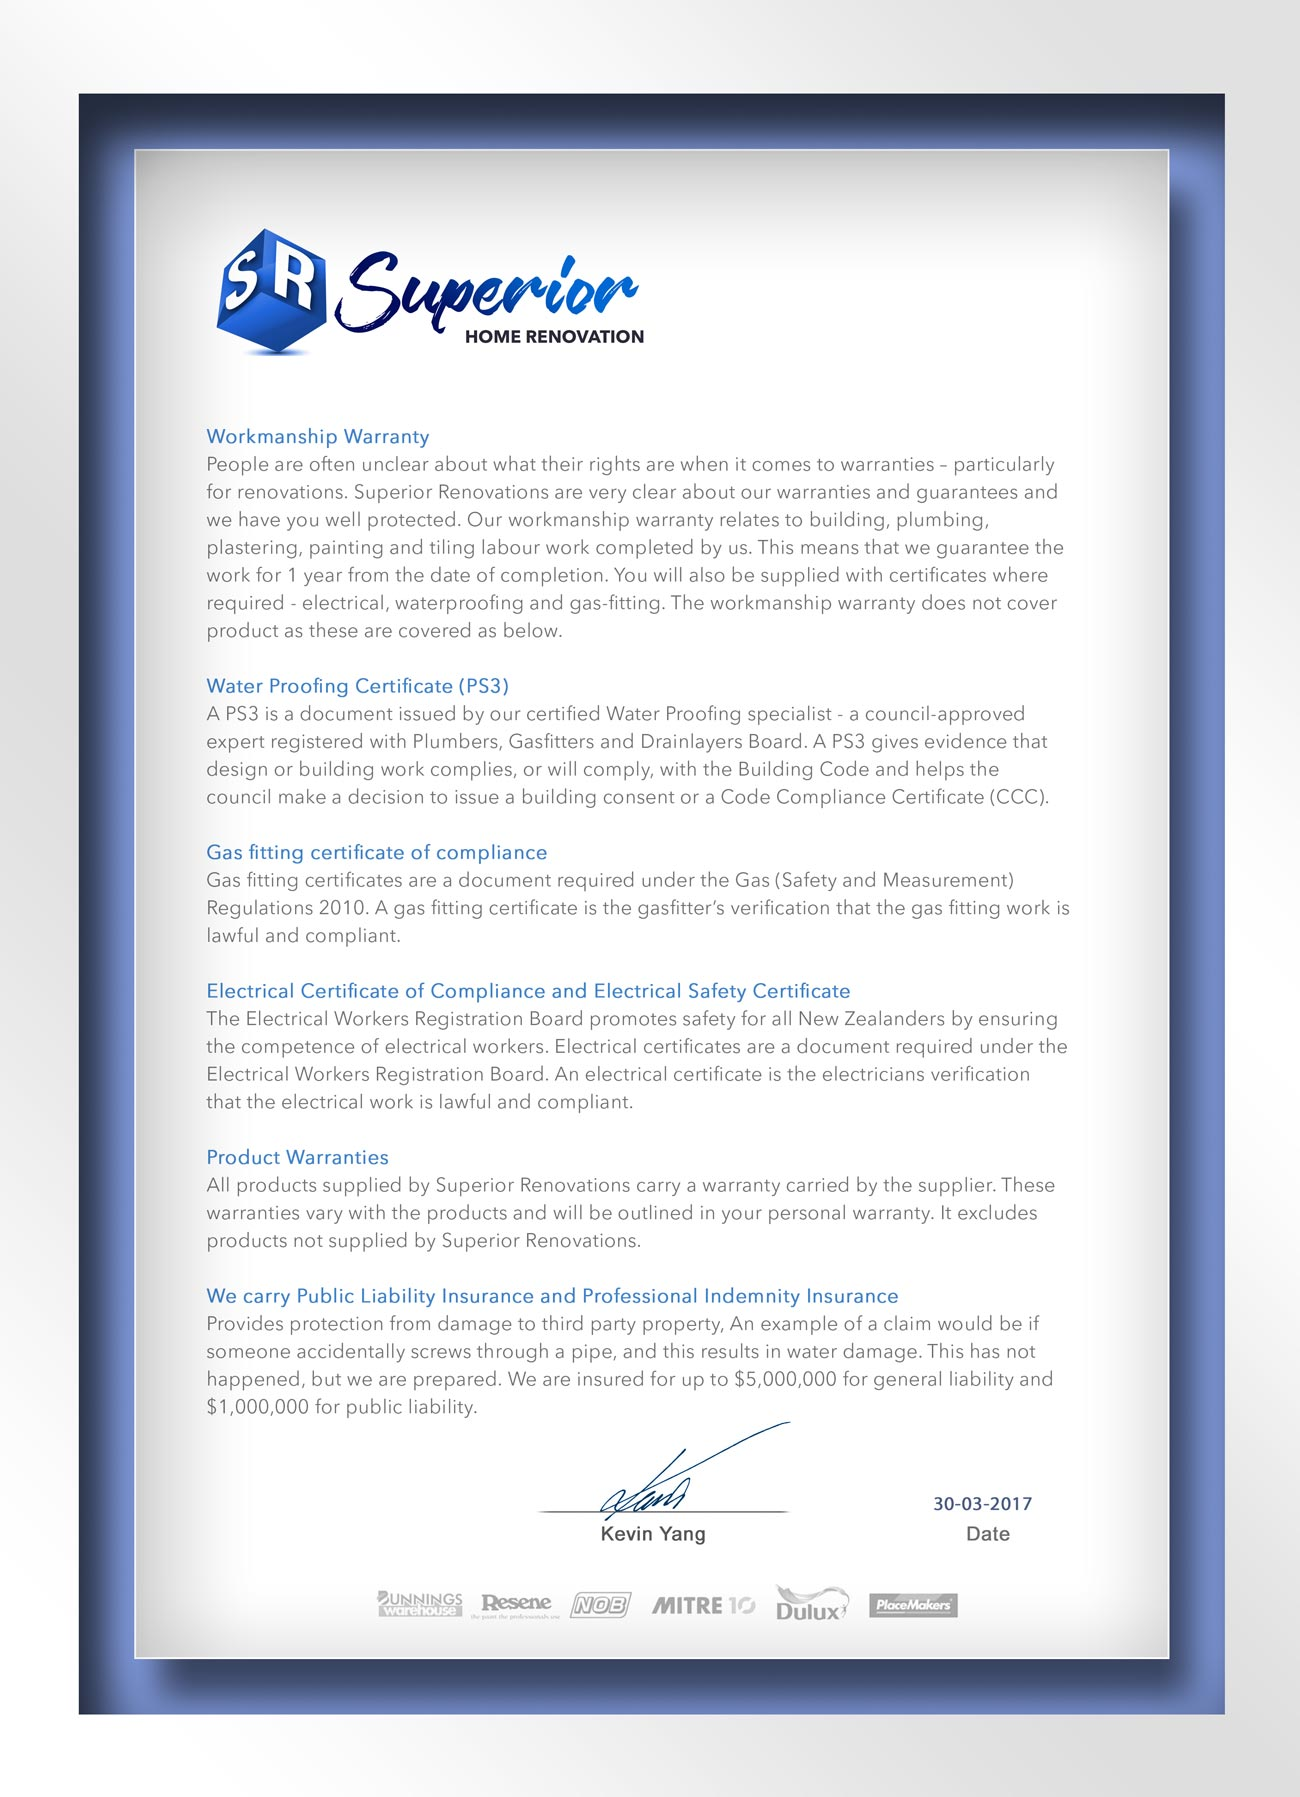 Home Renovation Guarantee for your peace of mind - Superior